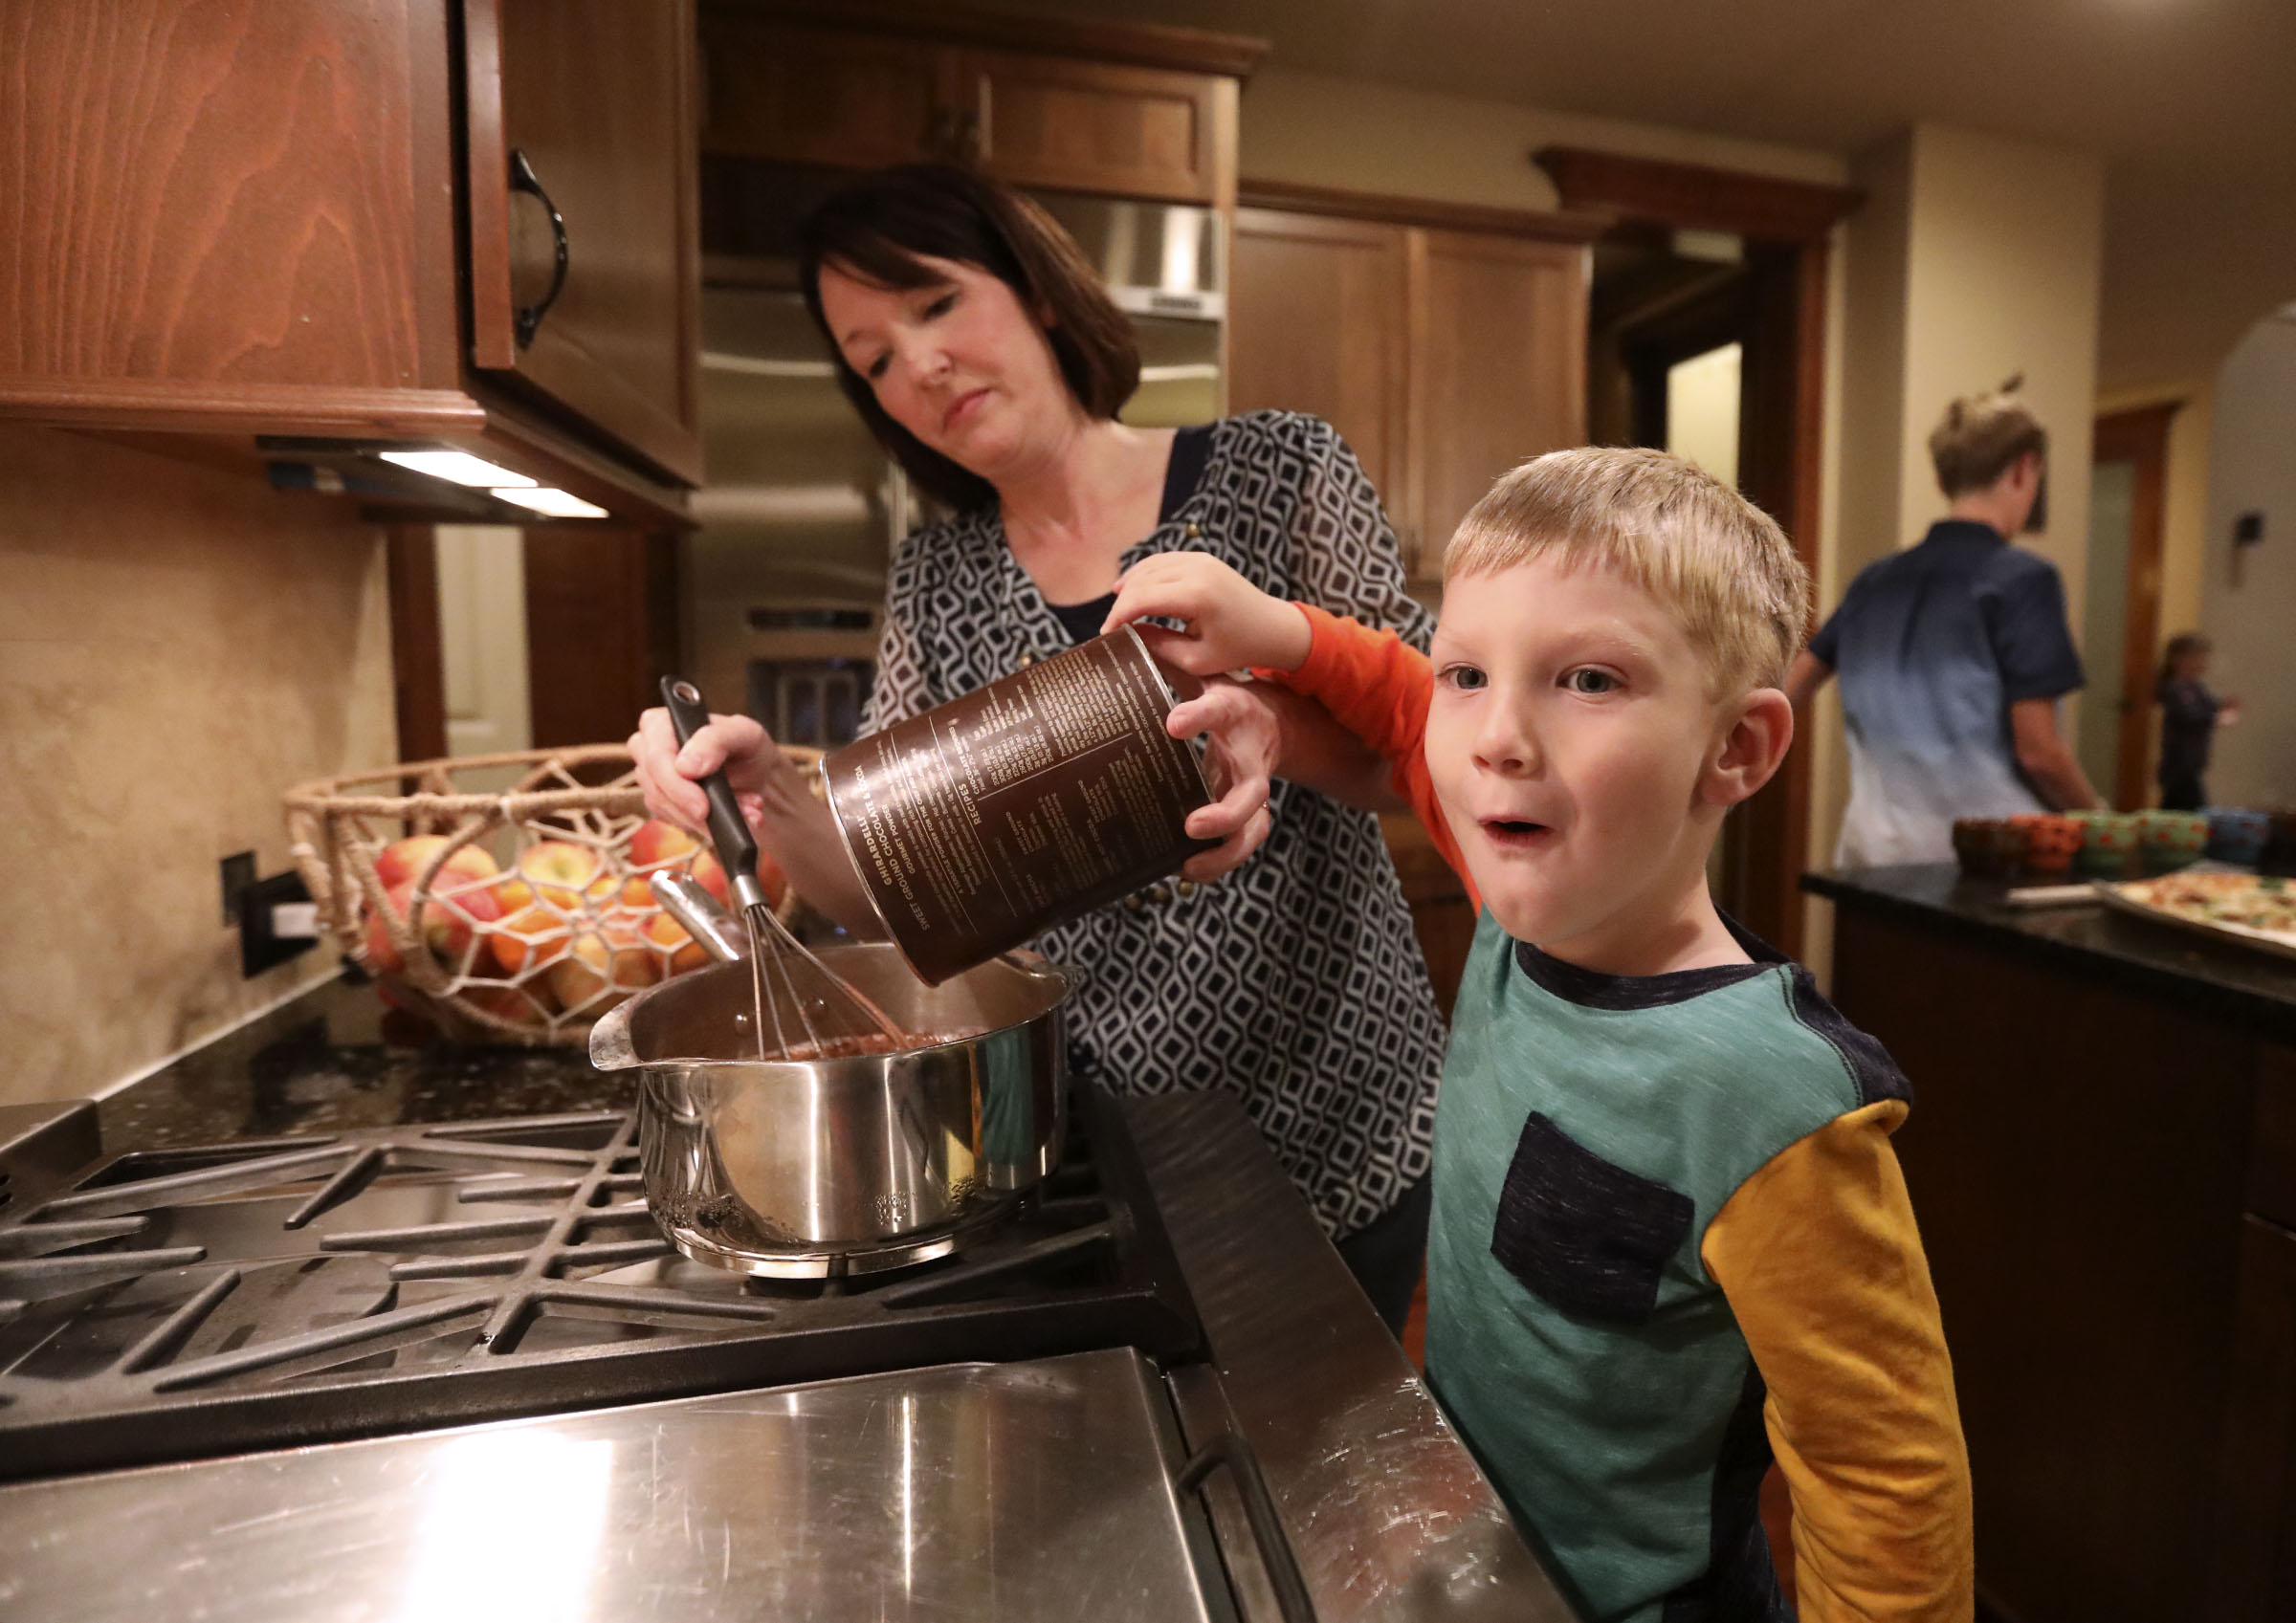 Alexis Allen helps her son Daniel Allen make hot chocolate at home in Renton, Wash., on Friday, Sept. 14, 2018.